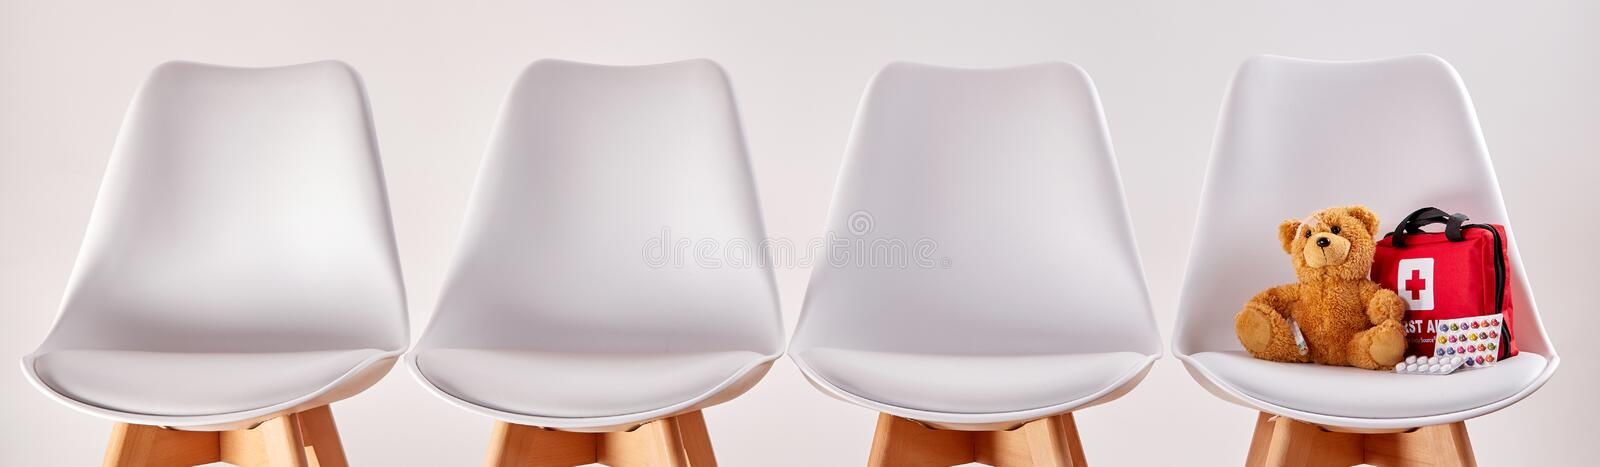 Row of chairs with teddy bear and first aid kit stock images